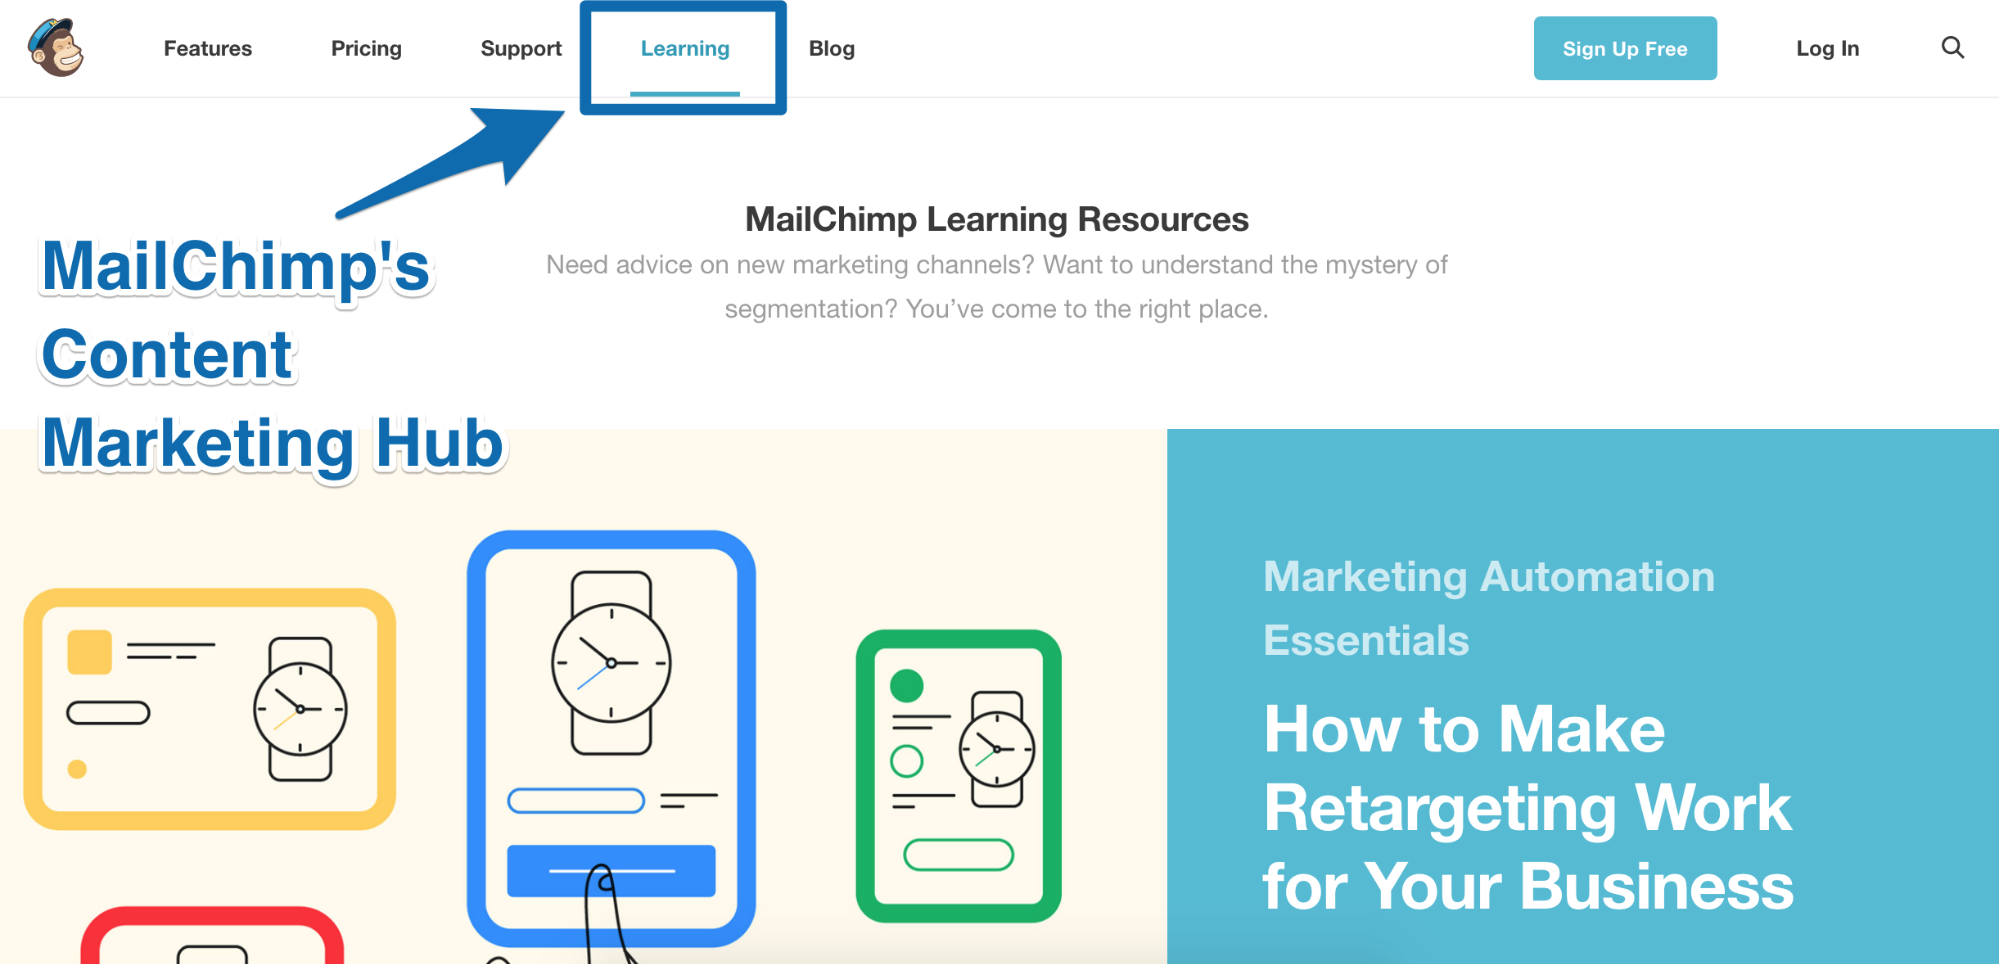 Screenshot showing mailchimp